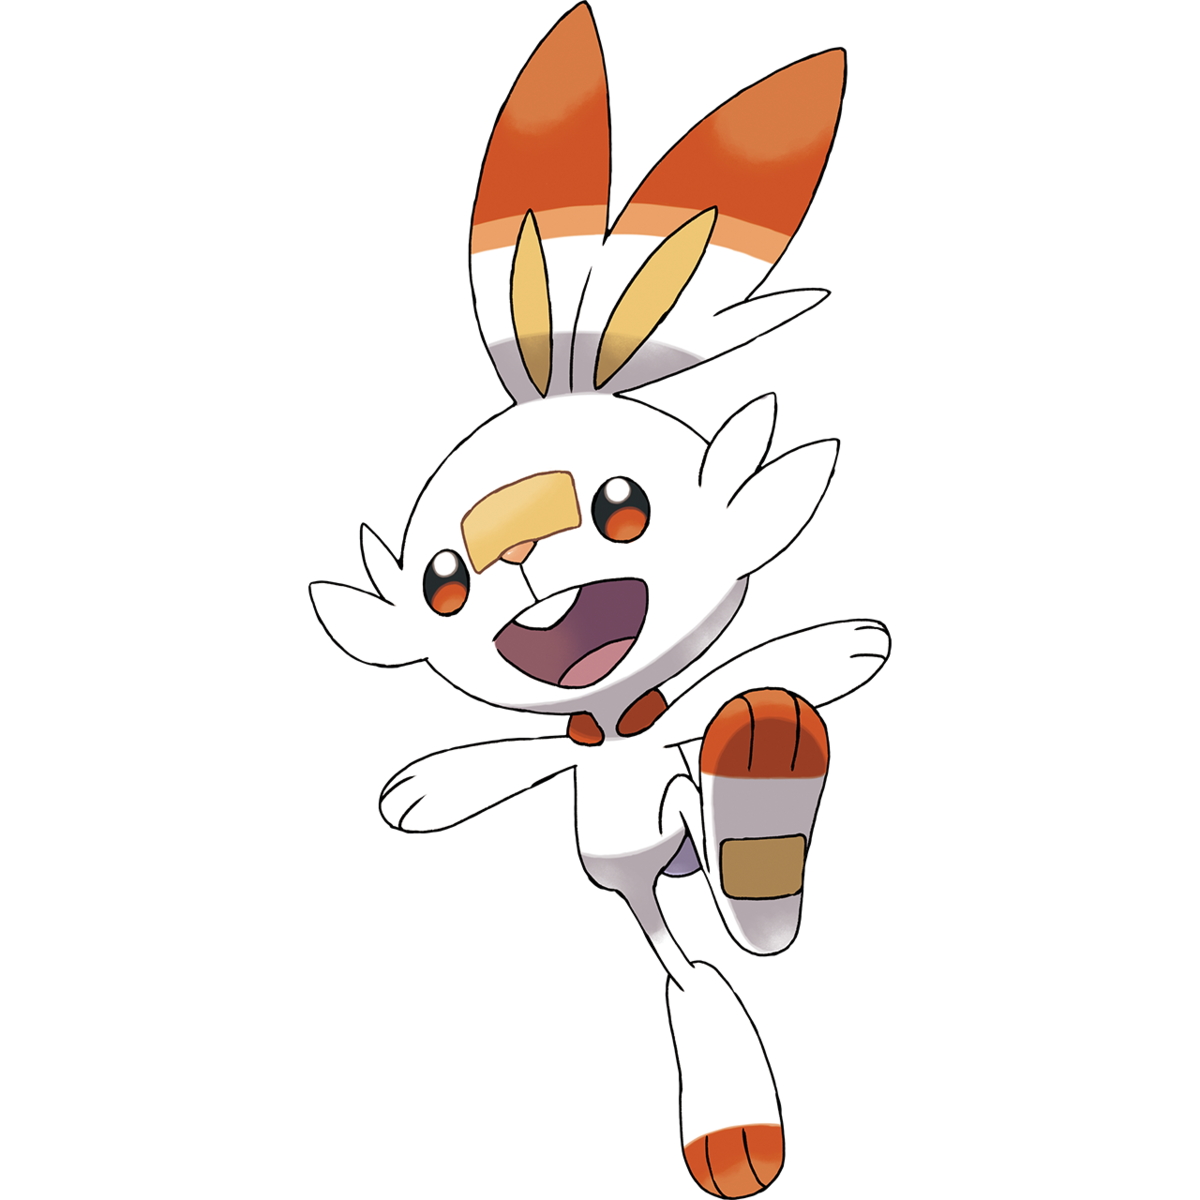 Courtney's Scorbunny